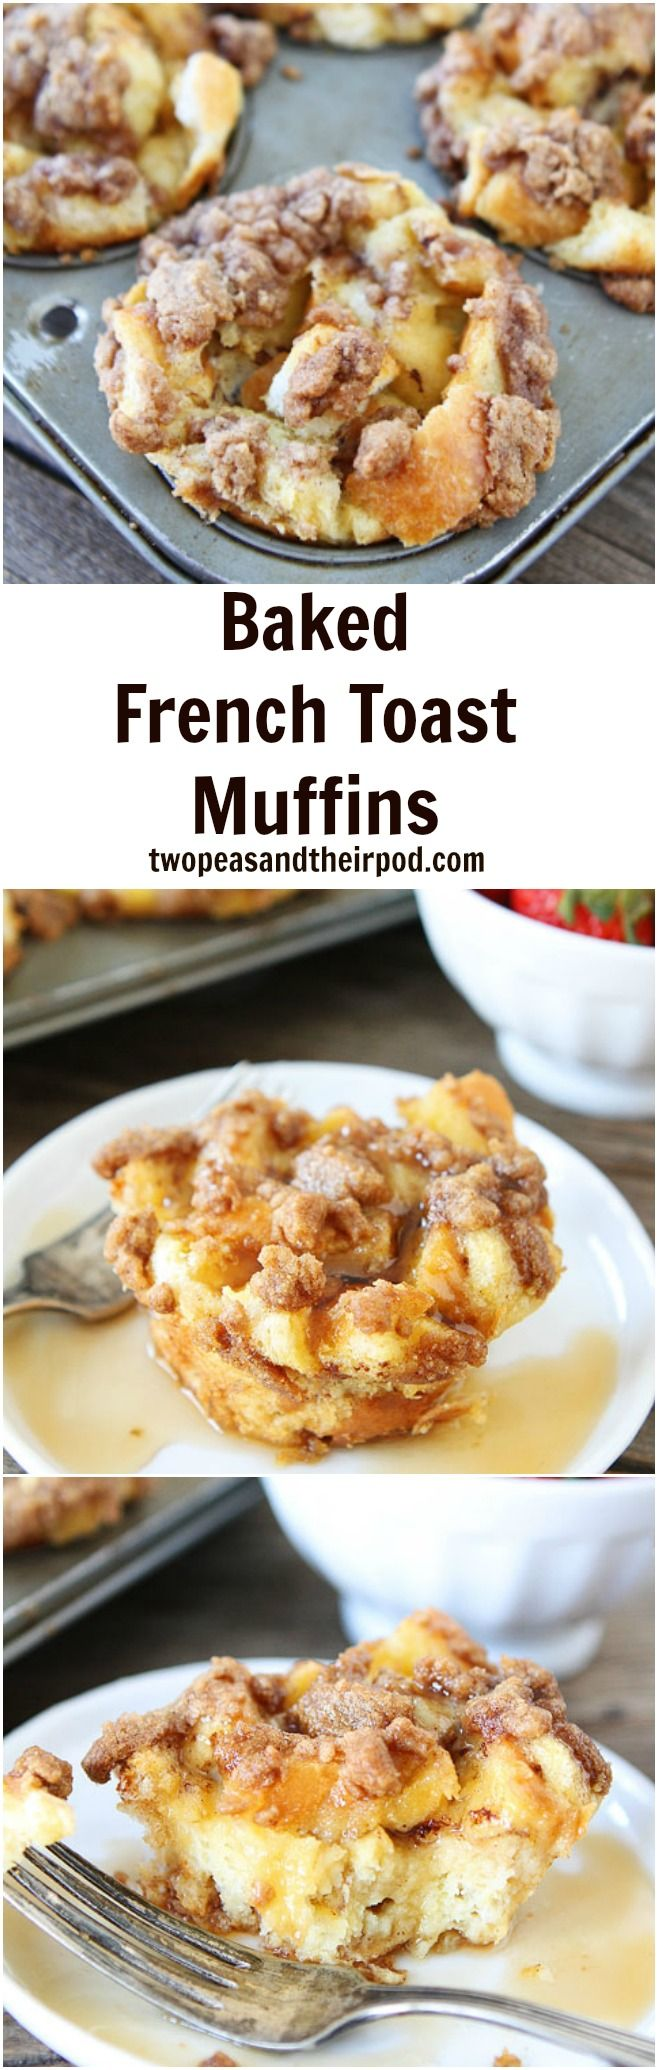 Baked French Toast Muffins Recipe on twopeasandtheirpod.com Enjoy French toast in muffin form! These sweet muffins are a real breakfast treat!